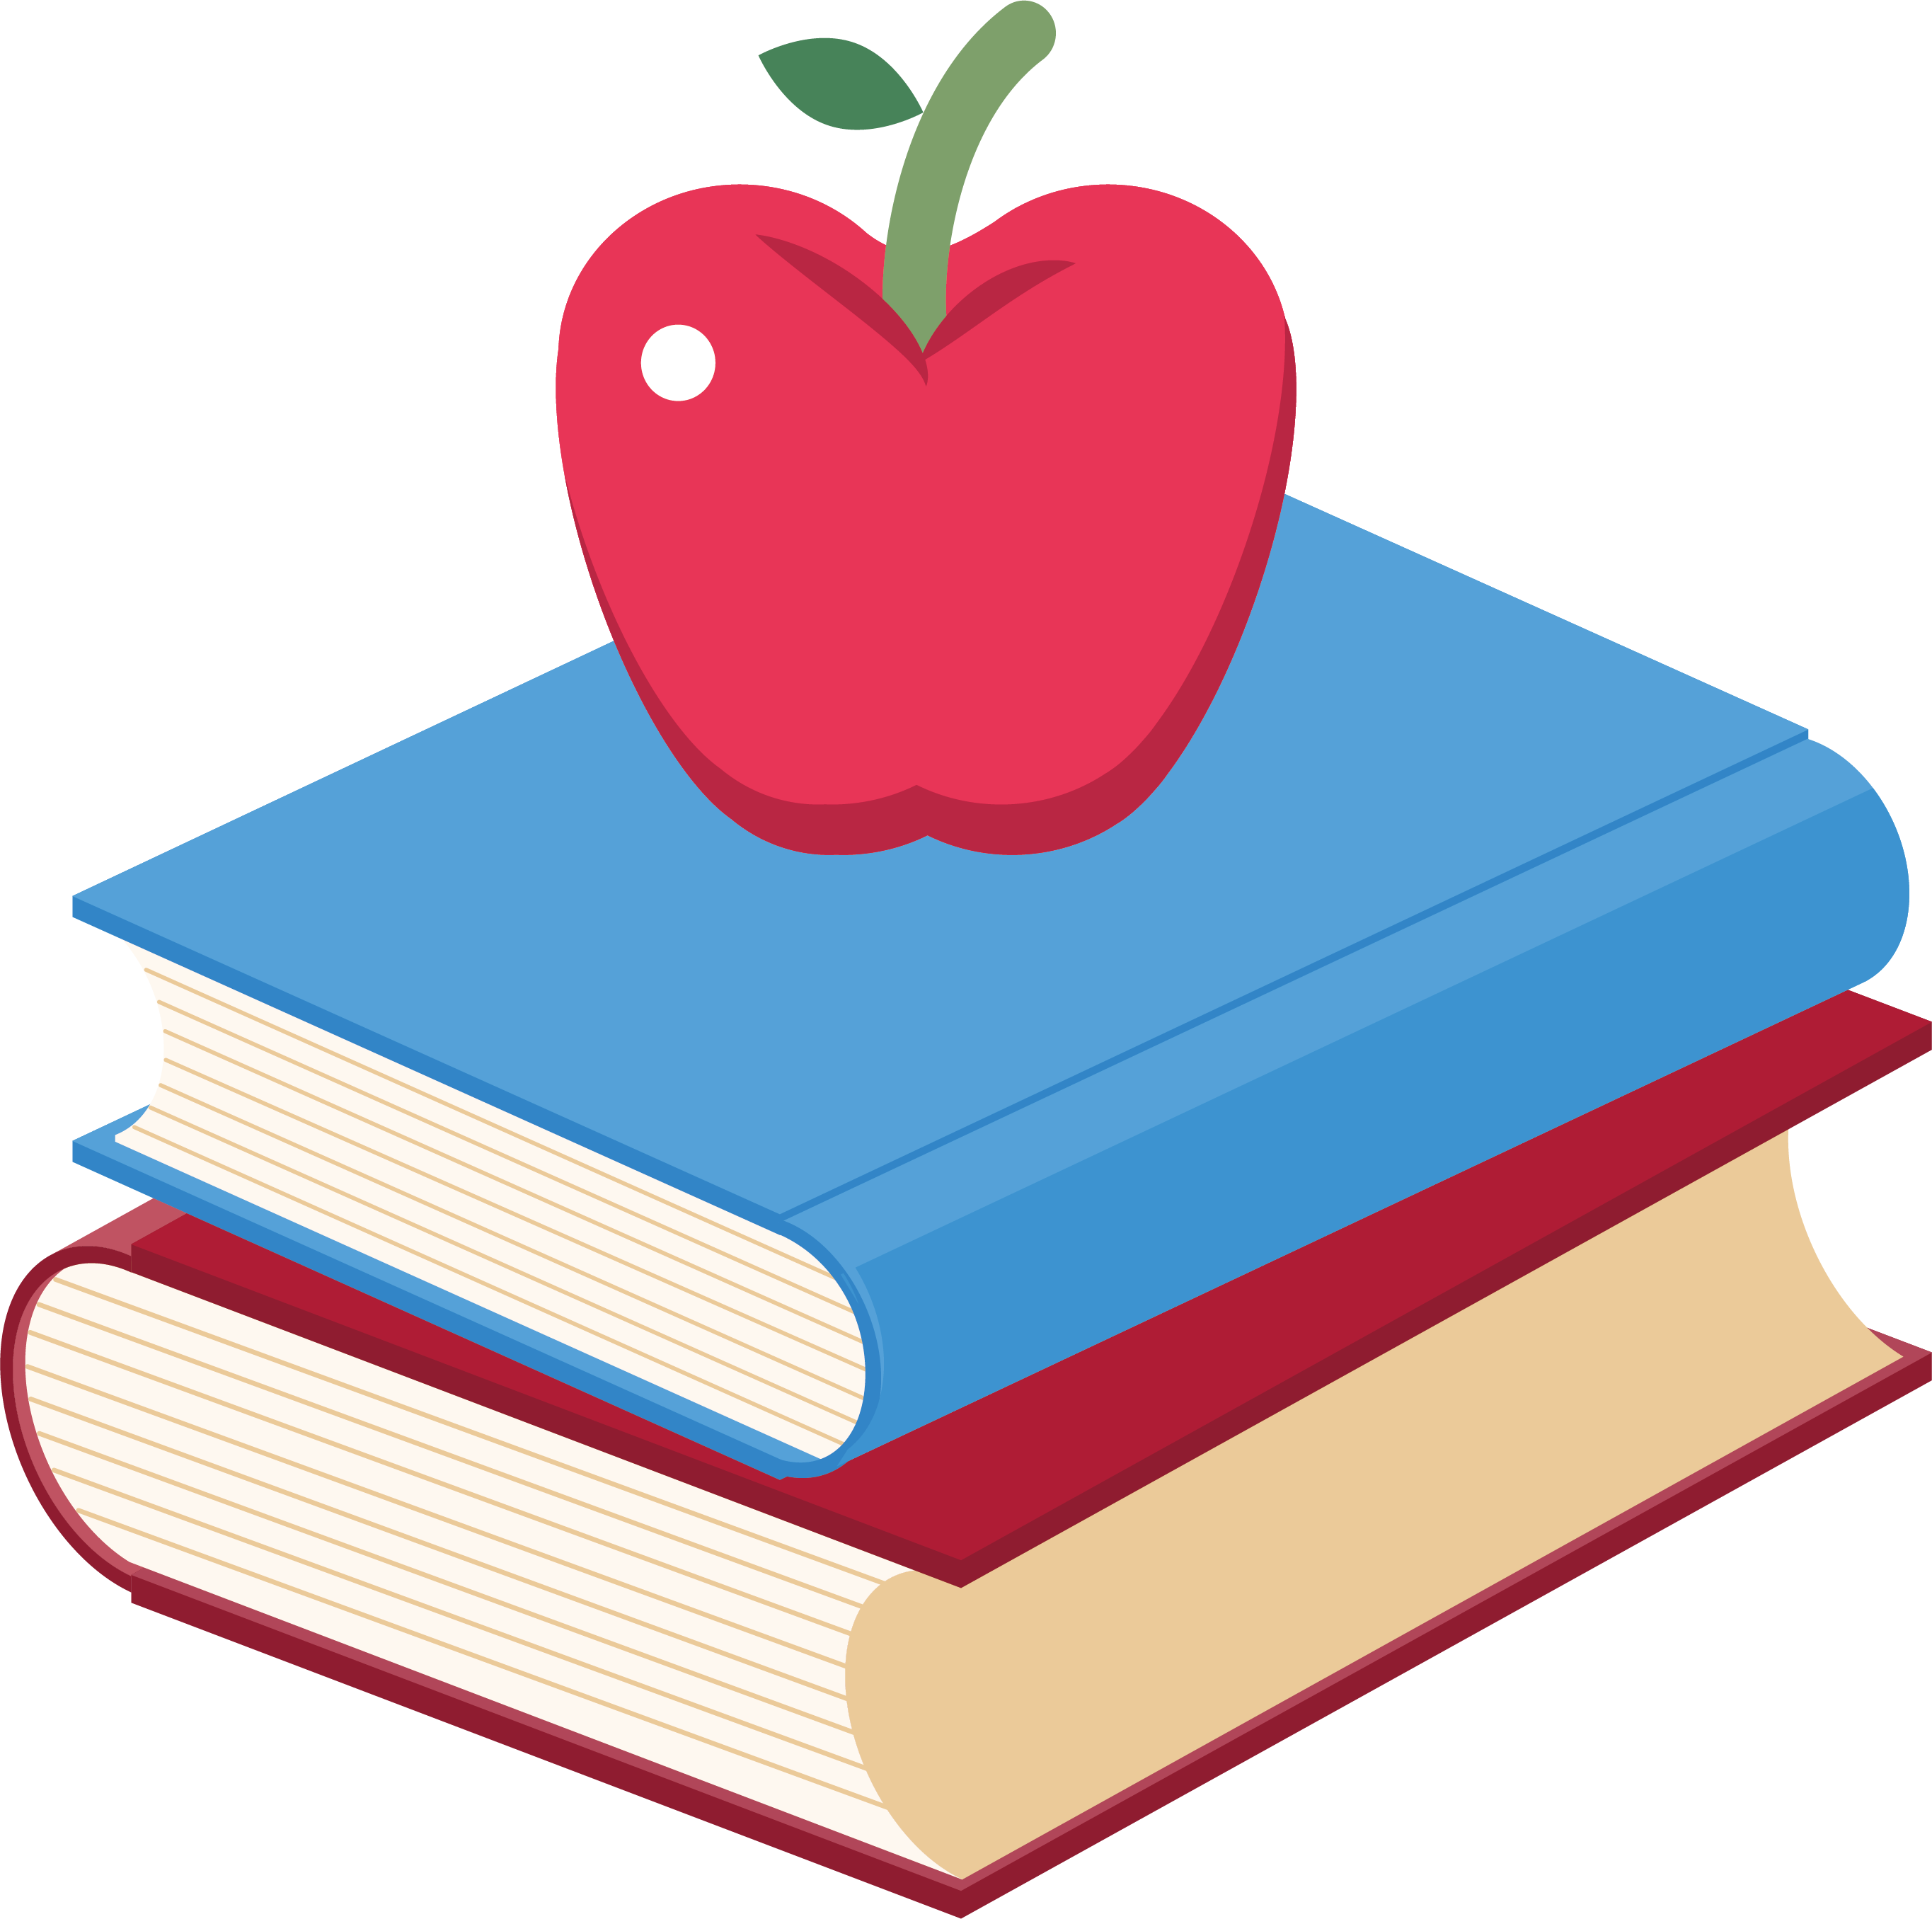 Heart apple clipart clipart library library Book Apple Clip art - Two books, an apple 2730*2711 transprent Png ... clipart library library